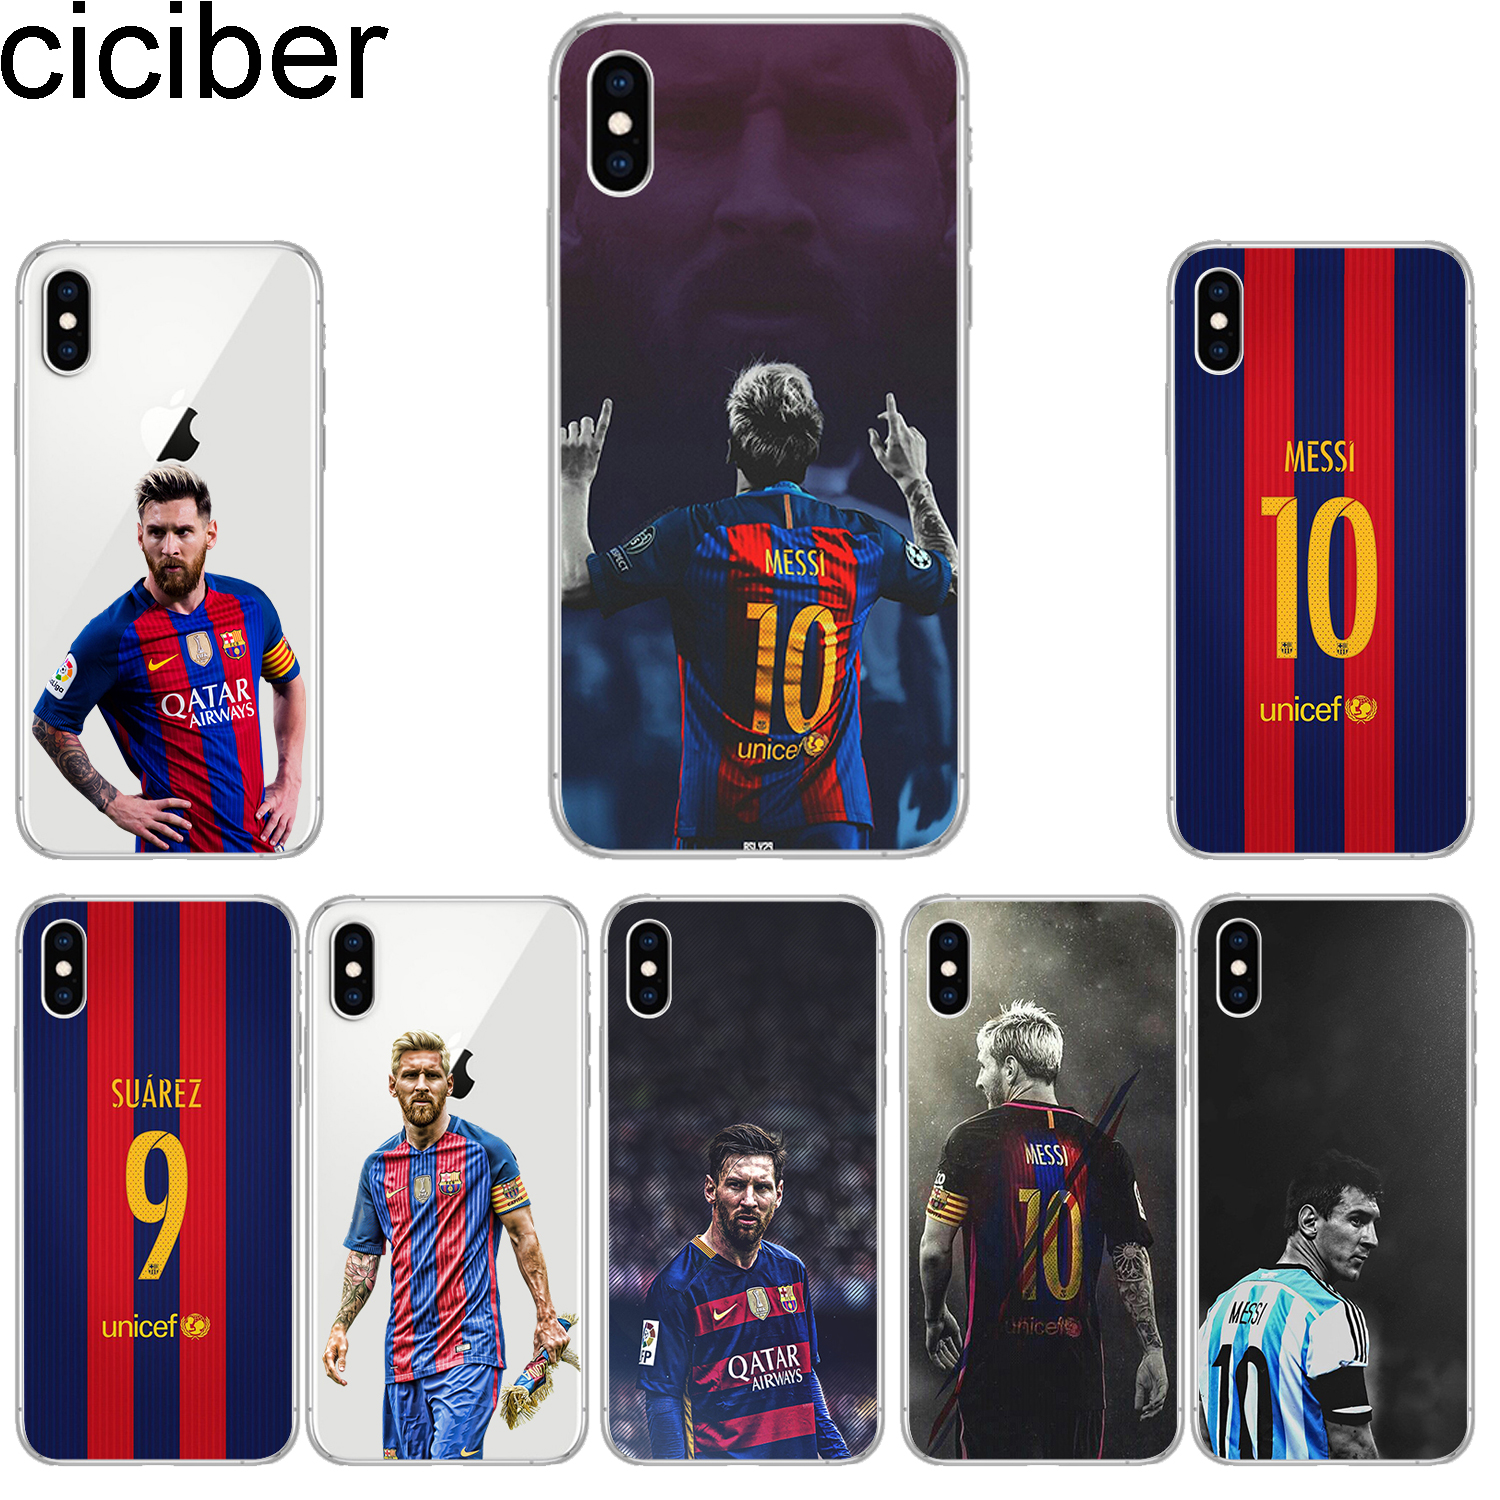 0bce27a5f74 ciciber Phone Cases for iPhone 8 7 6 6s Plus SE 5s Soft TPU Back Cover for  iPhone X Xs XR XS Max Case Messi Coque Capa Fundas